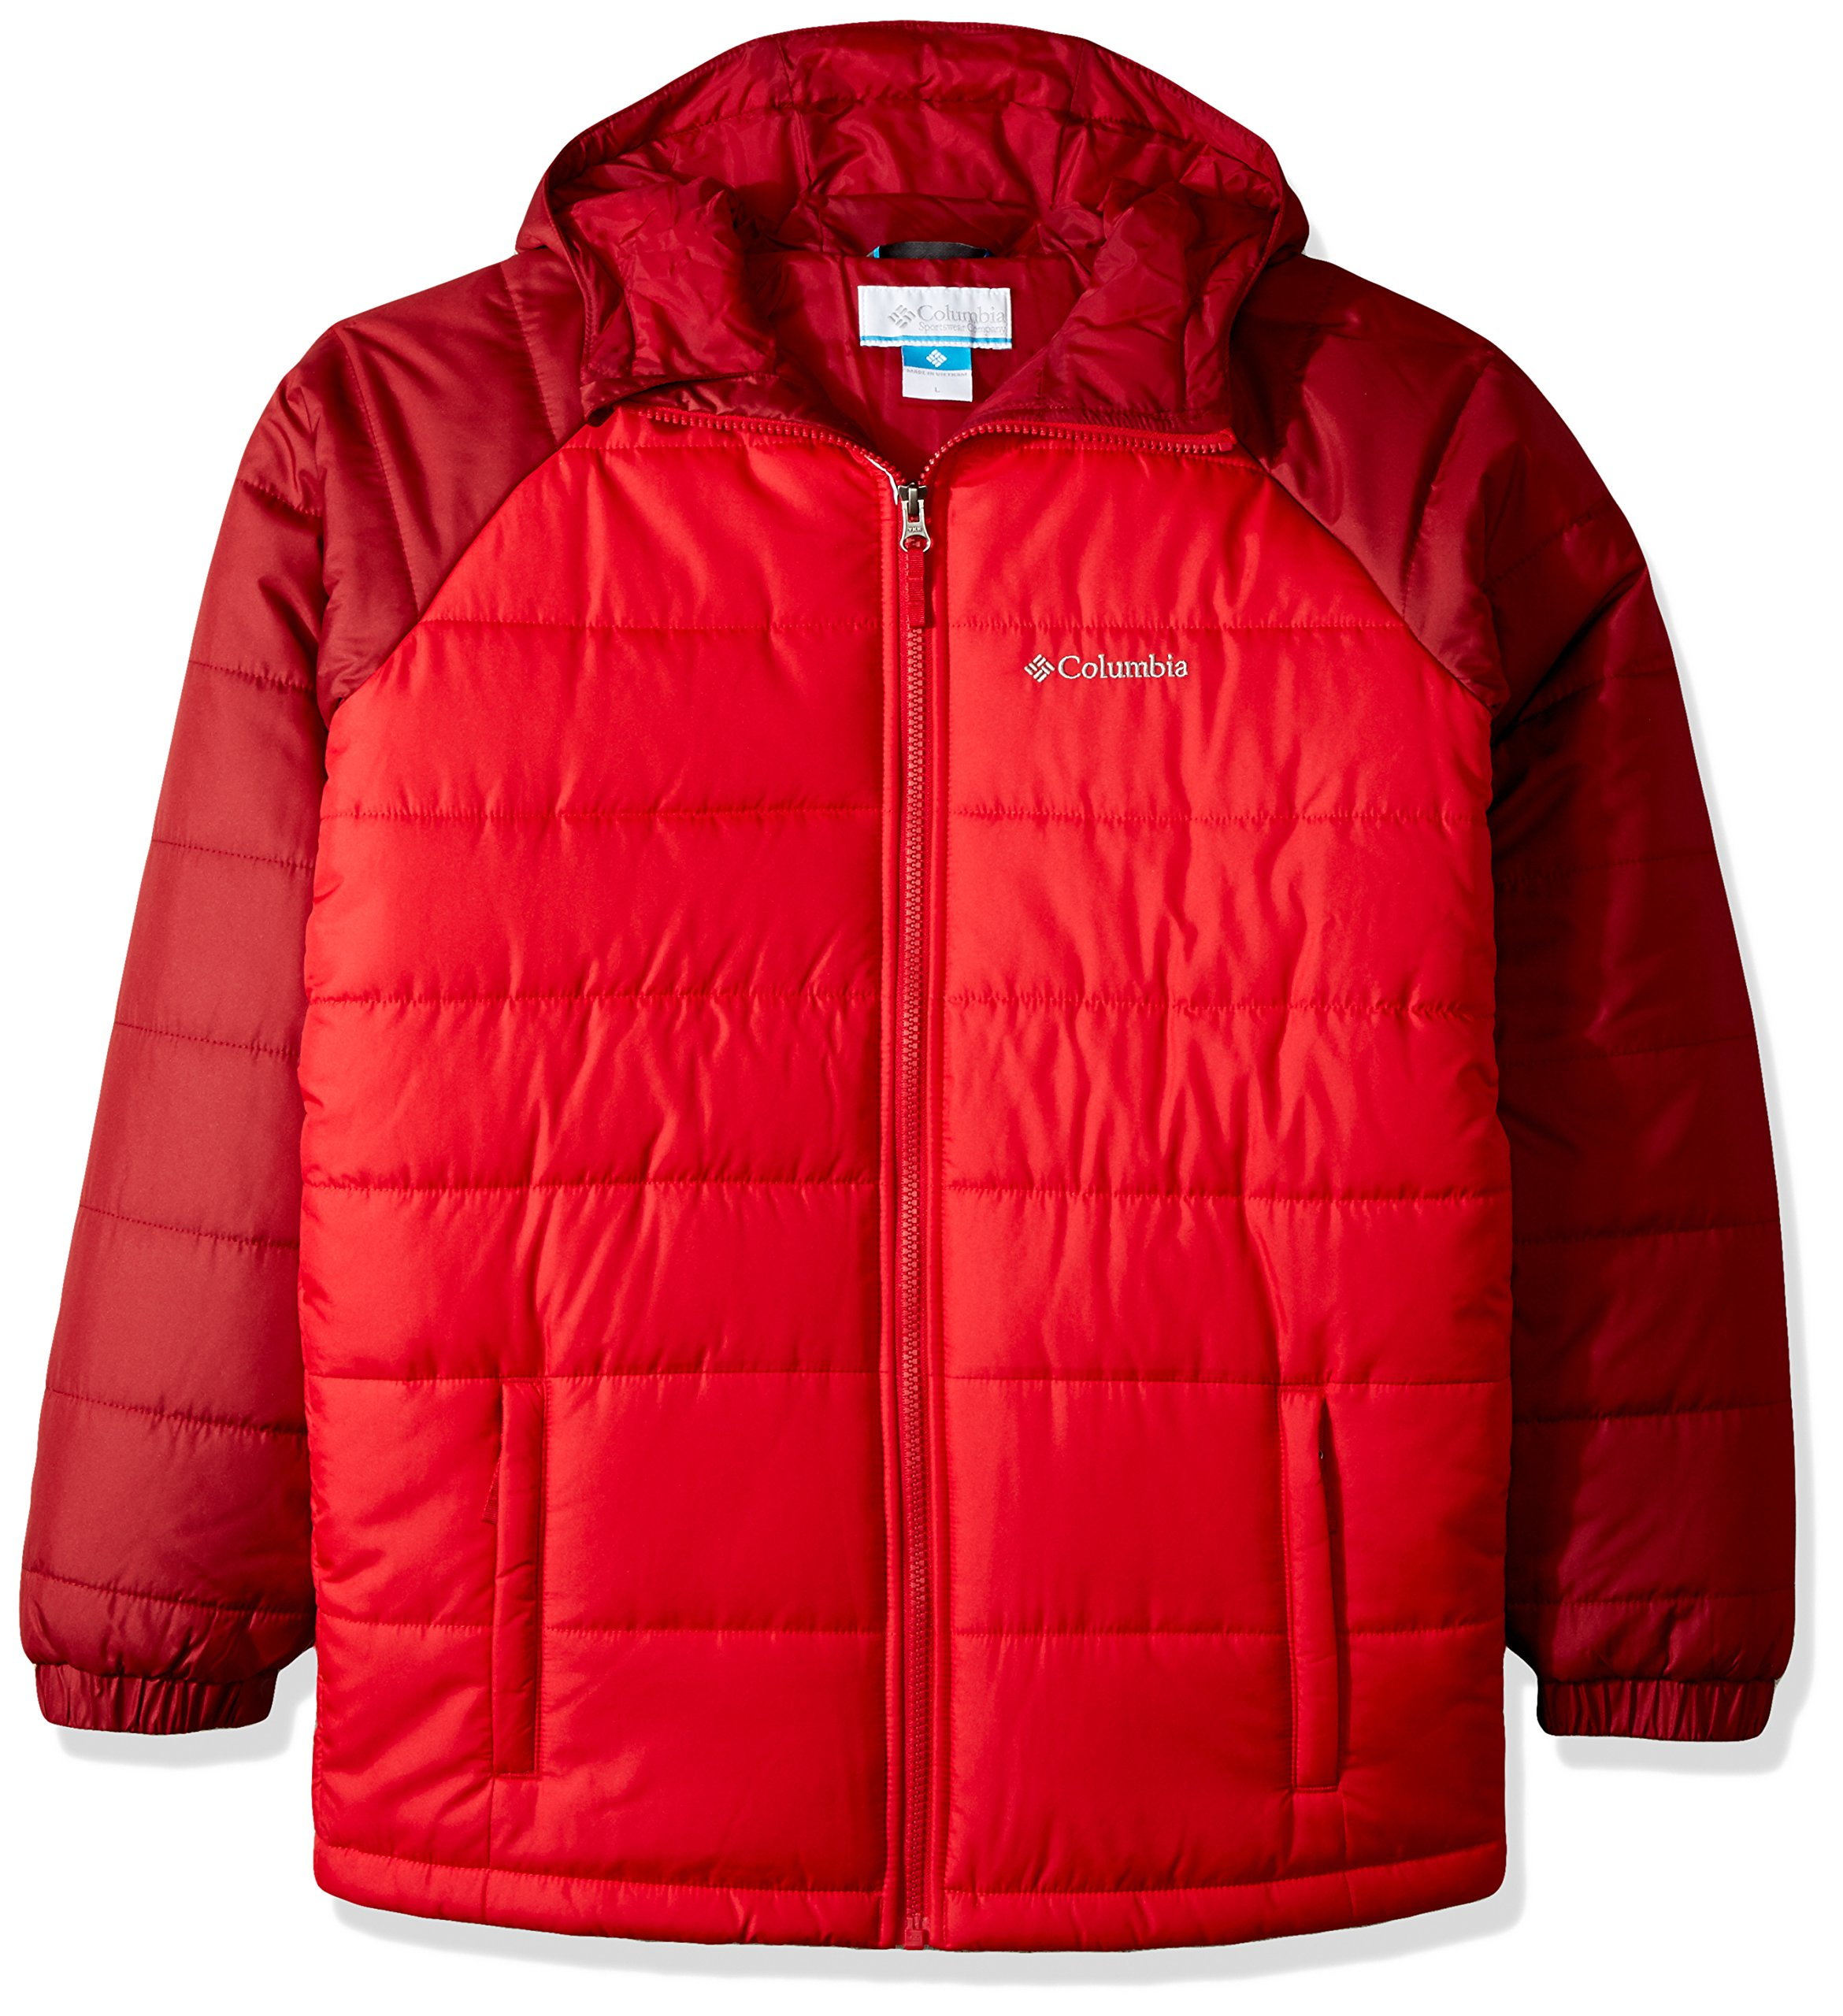 Columbia Boys' Little Tree Time Puffer Jacket, Mountain Red, Beet, Small